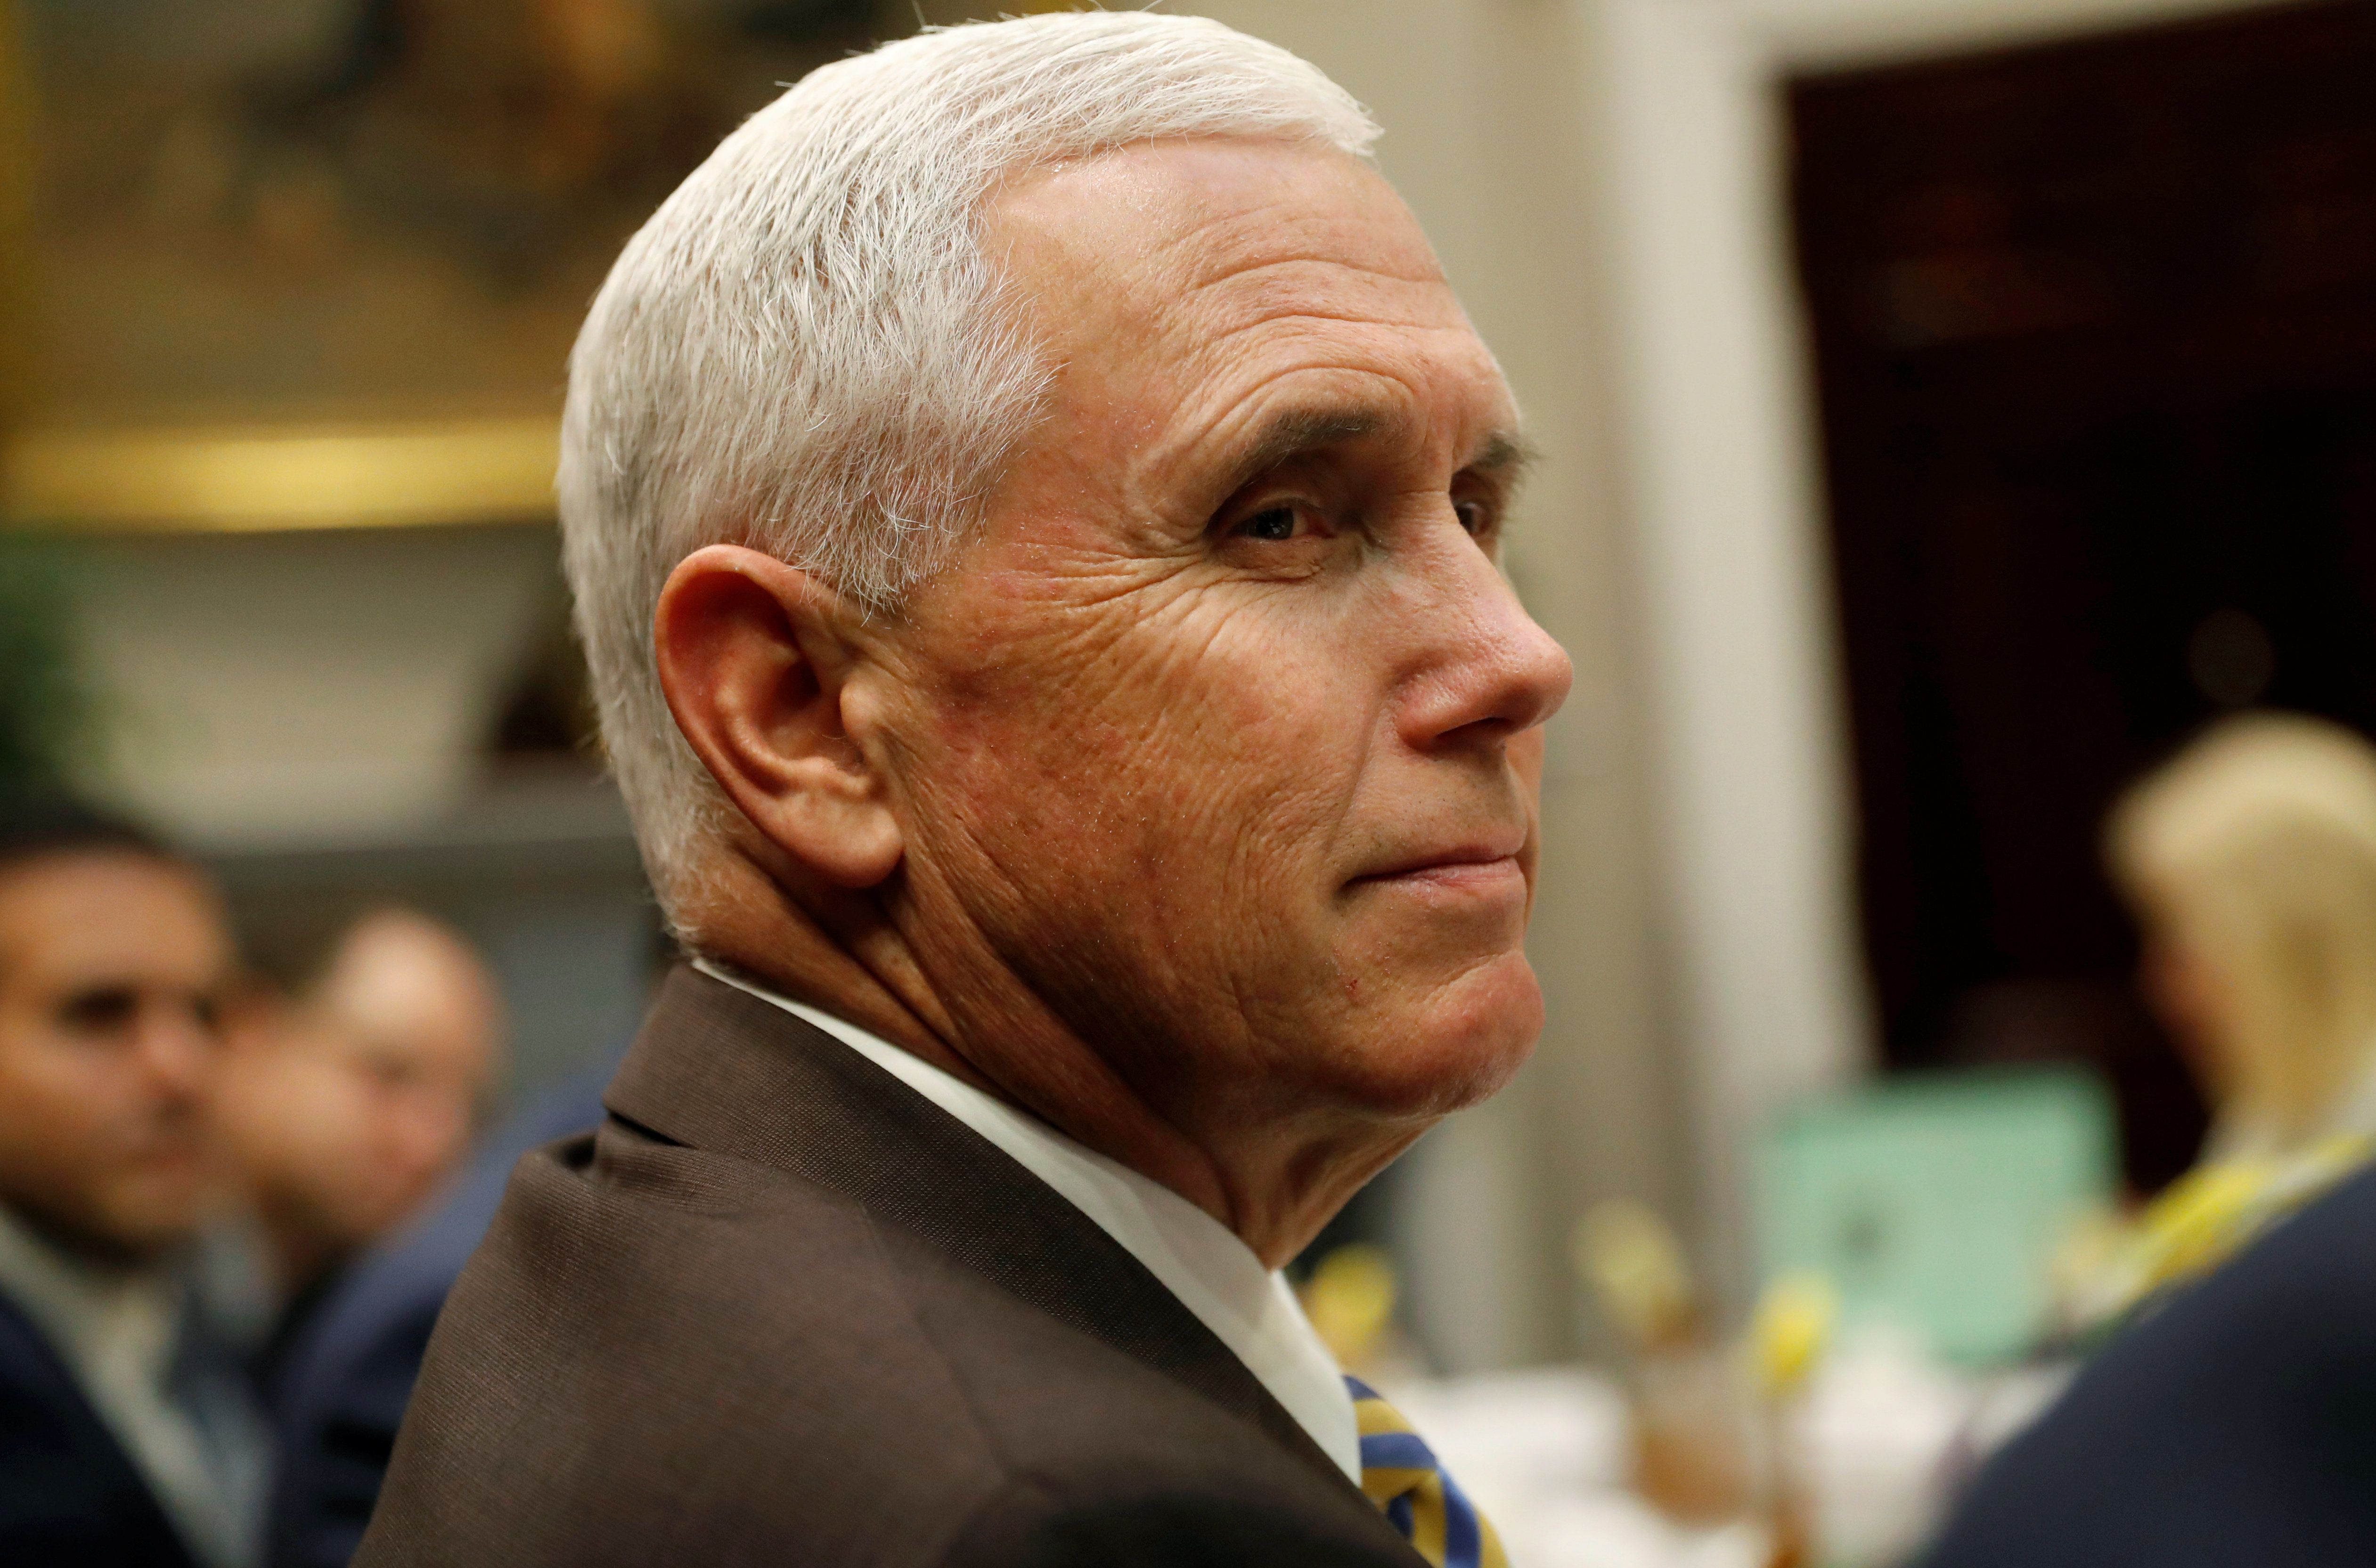 Pence says staff didn't do it